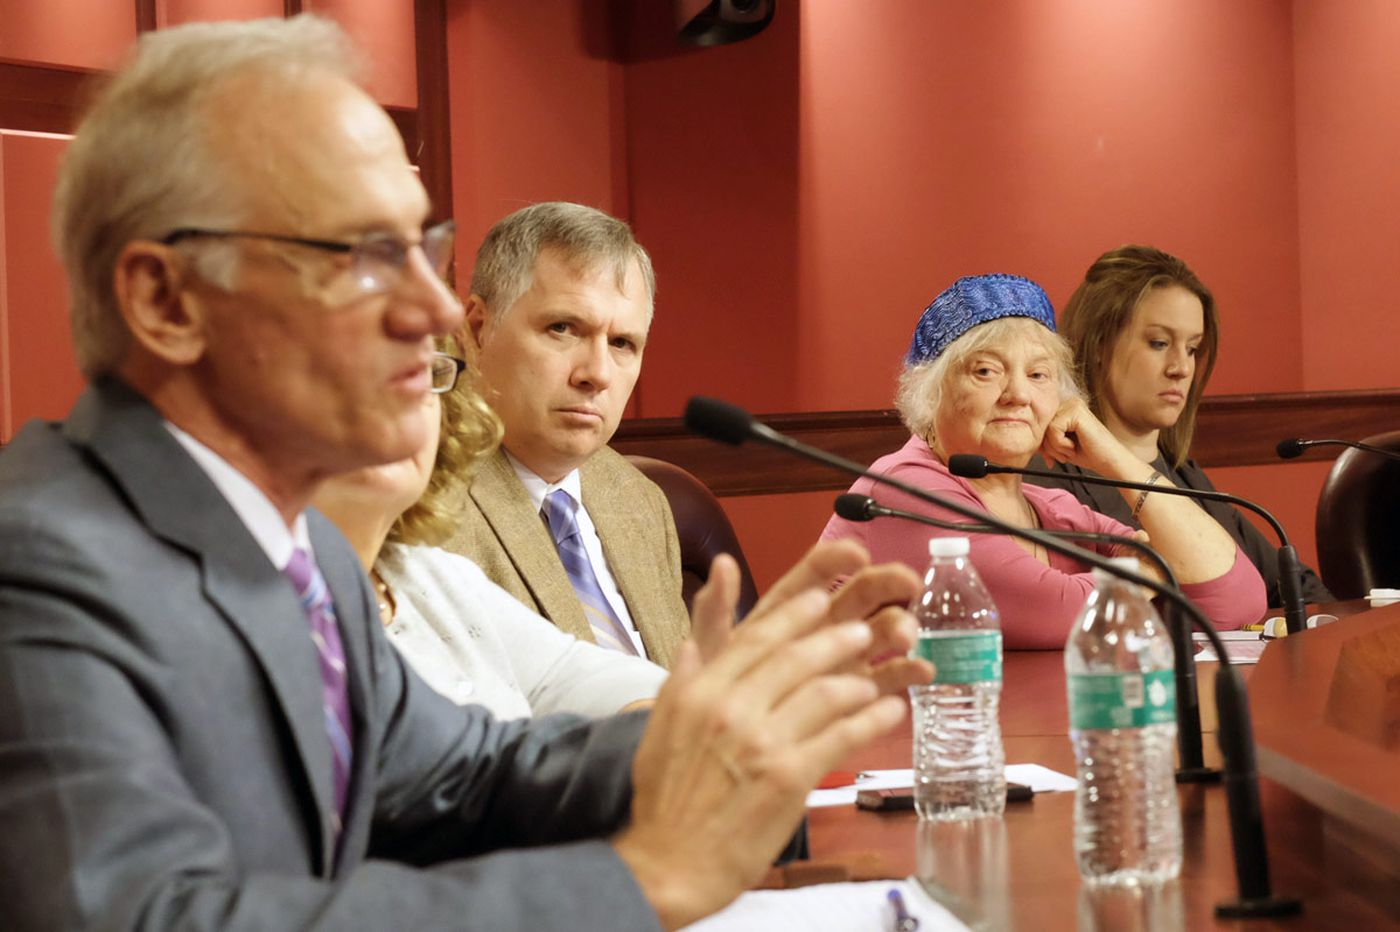 Inquirer editorial: Delayed justice for abuse victims need not be denied